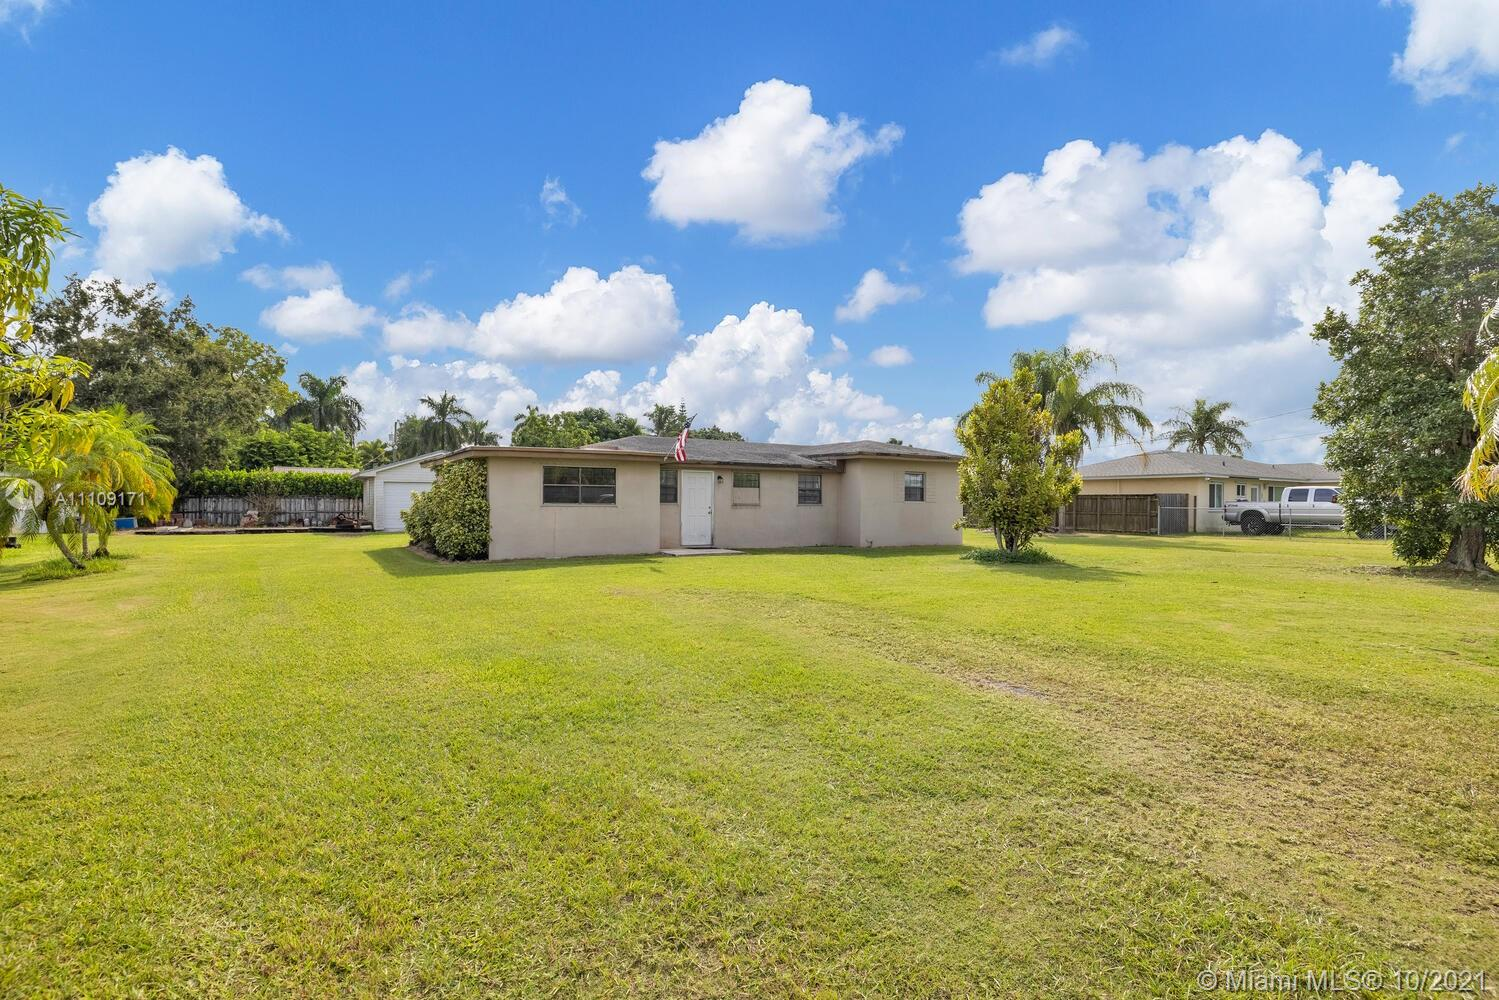 Single Family Home,For Sale,30525 SW 193rd Ct, Homestead, Florida 33030,Brickell,realty,broker,condos near me